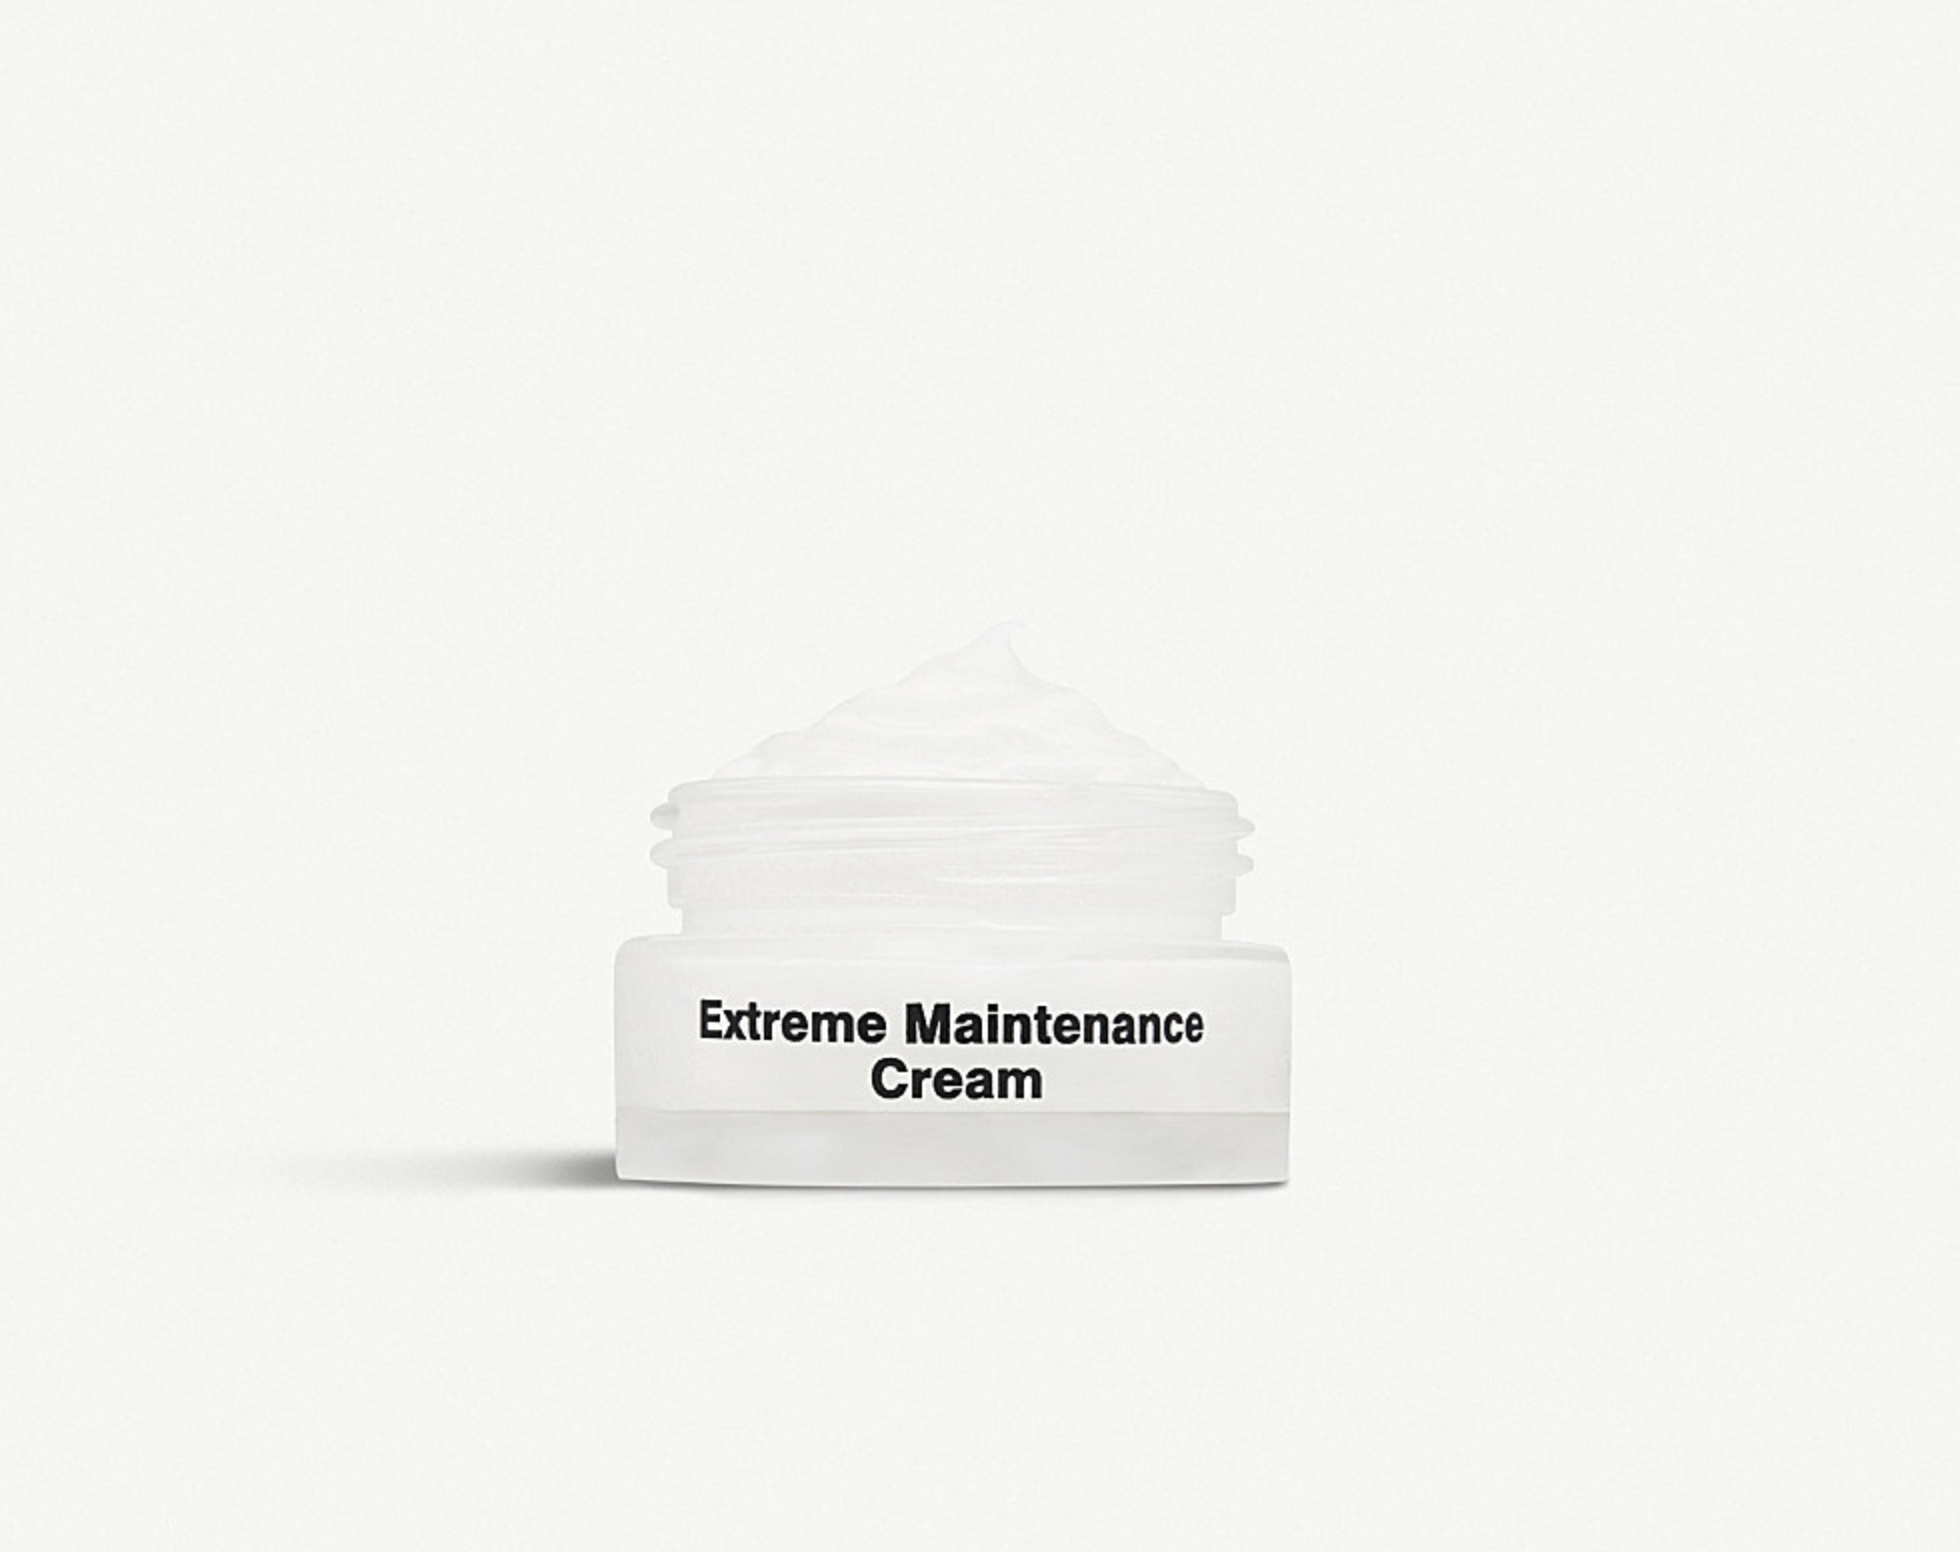 DR SEBAGH-Extreme Maintenance Cream 15ml-£30.00 - Whipped up with a fusion of biotech ingredients, Dr Sebagh's Extreme Maintenance Cream is the ultimate all-in-one formula to hydrate and protect the driest, most sensitive of skin types. Perfect for those cold winter month, don't you agree?